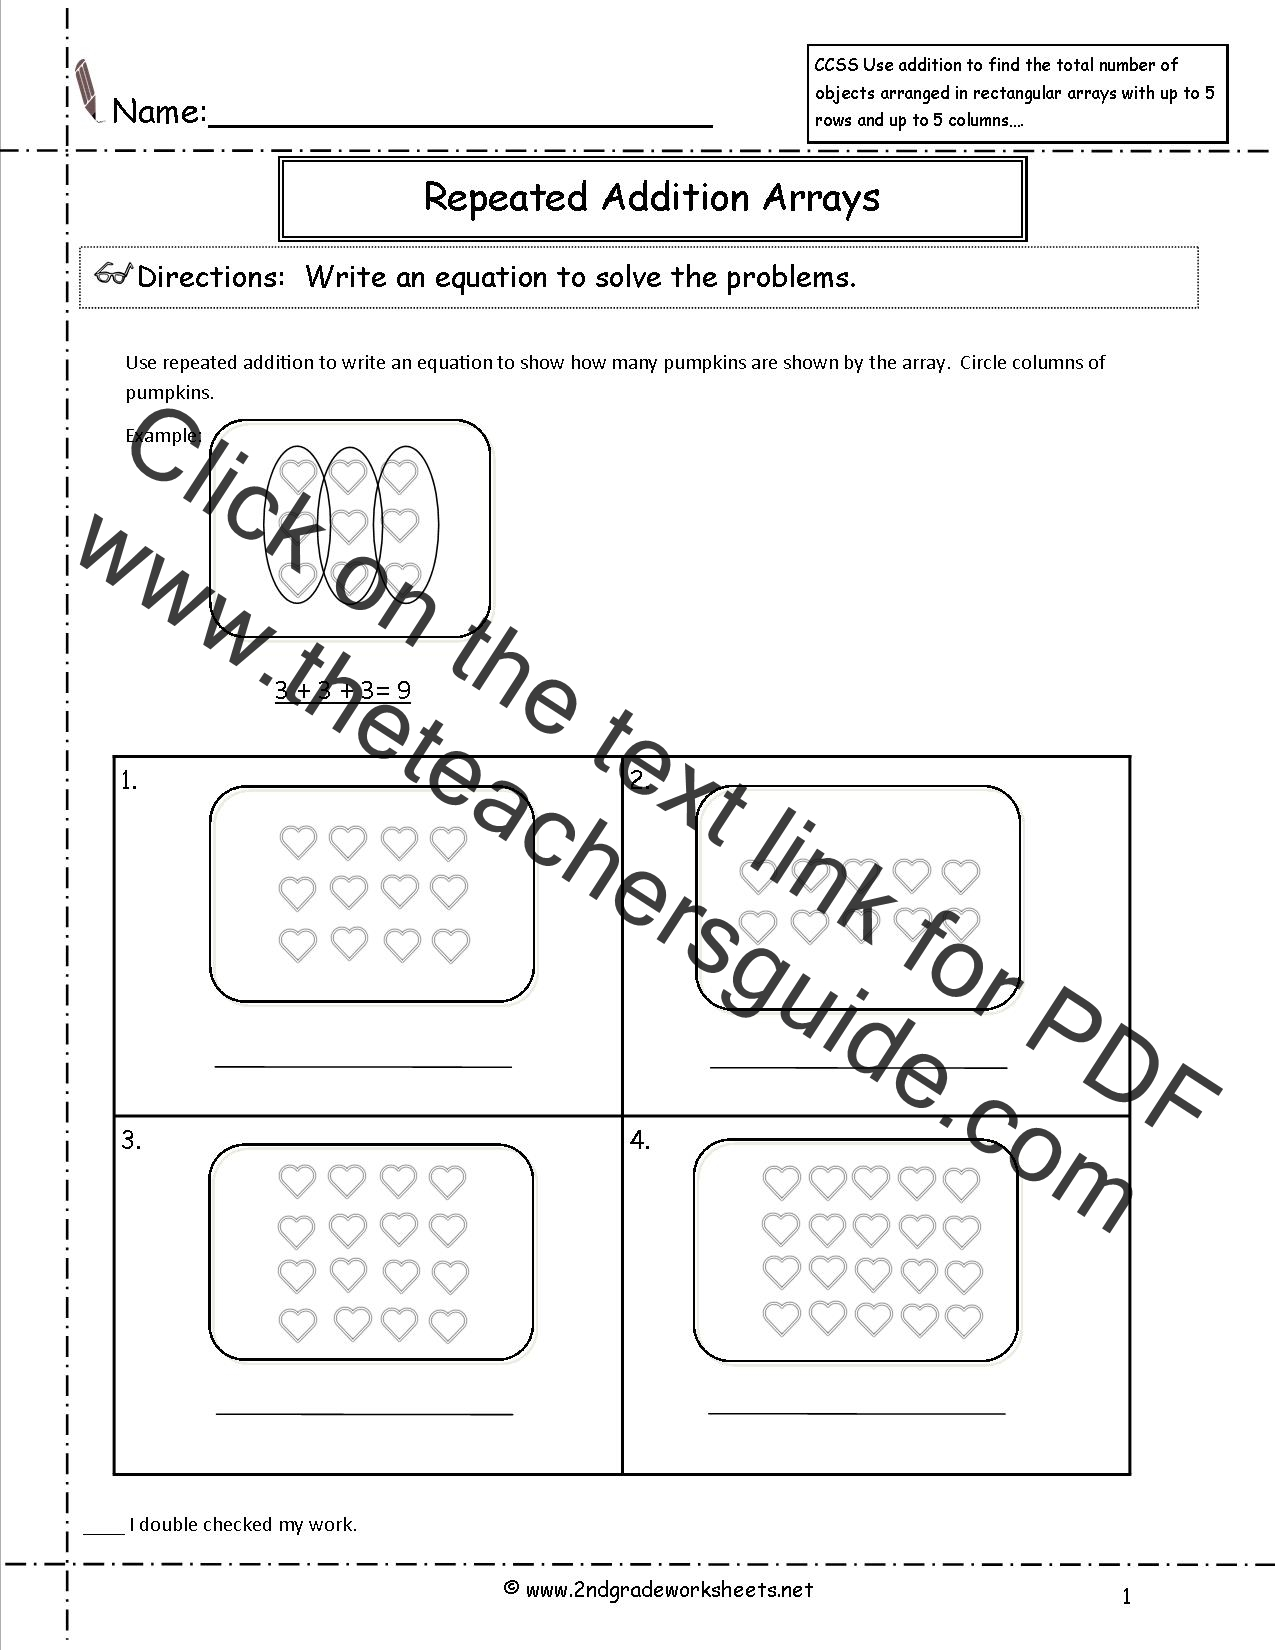 Common Core 4 Oa 3 Worksheet